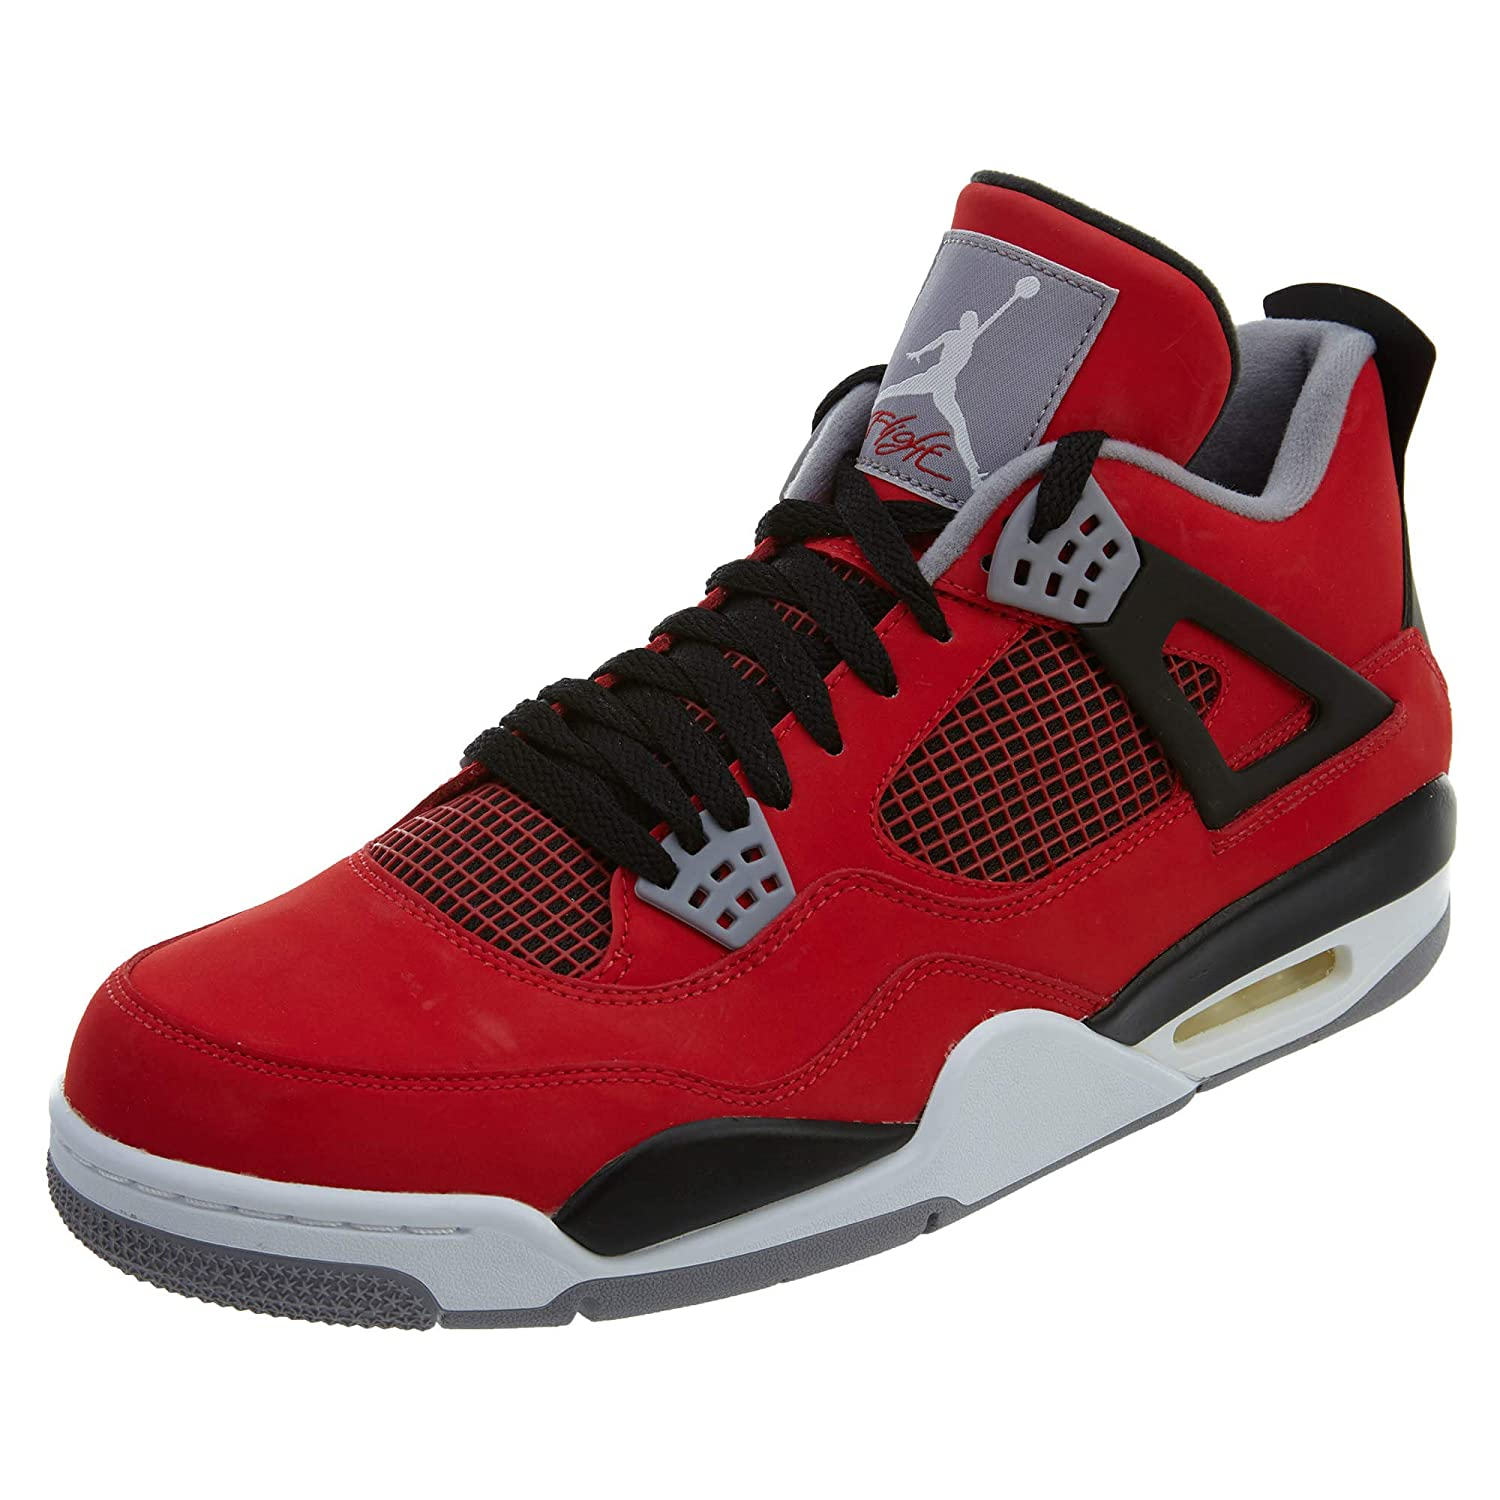 best service 10e07 6b13c Air Jordan 4 Retro